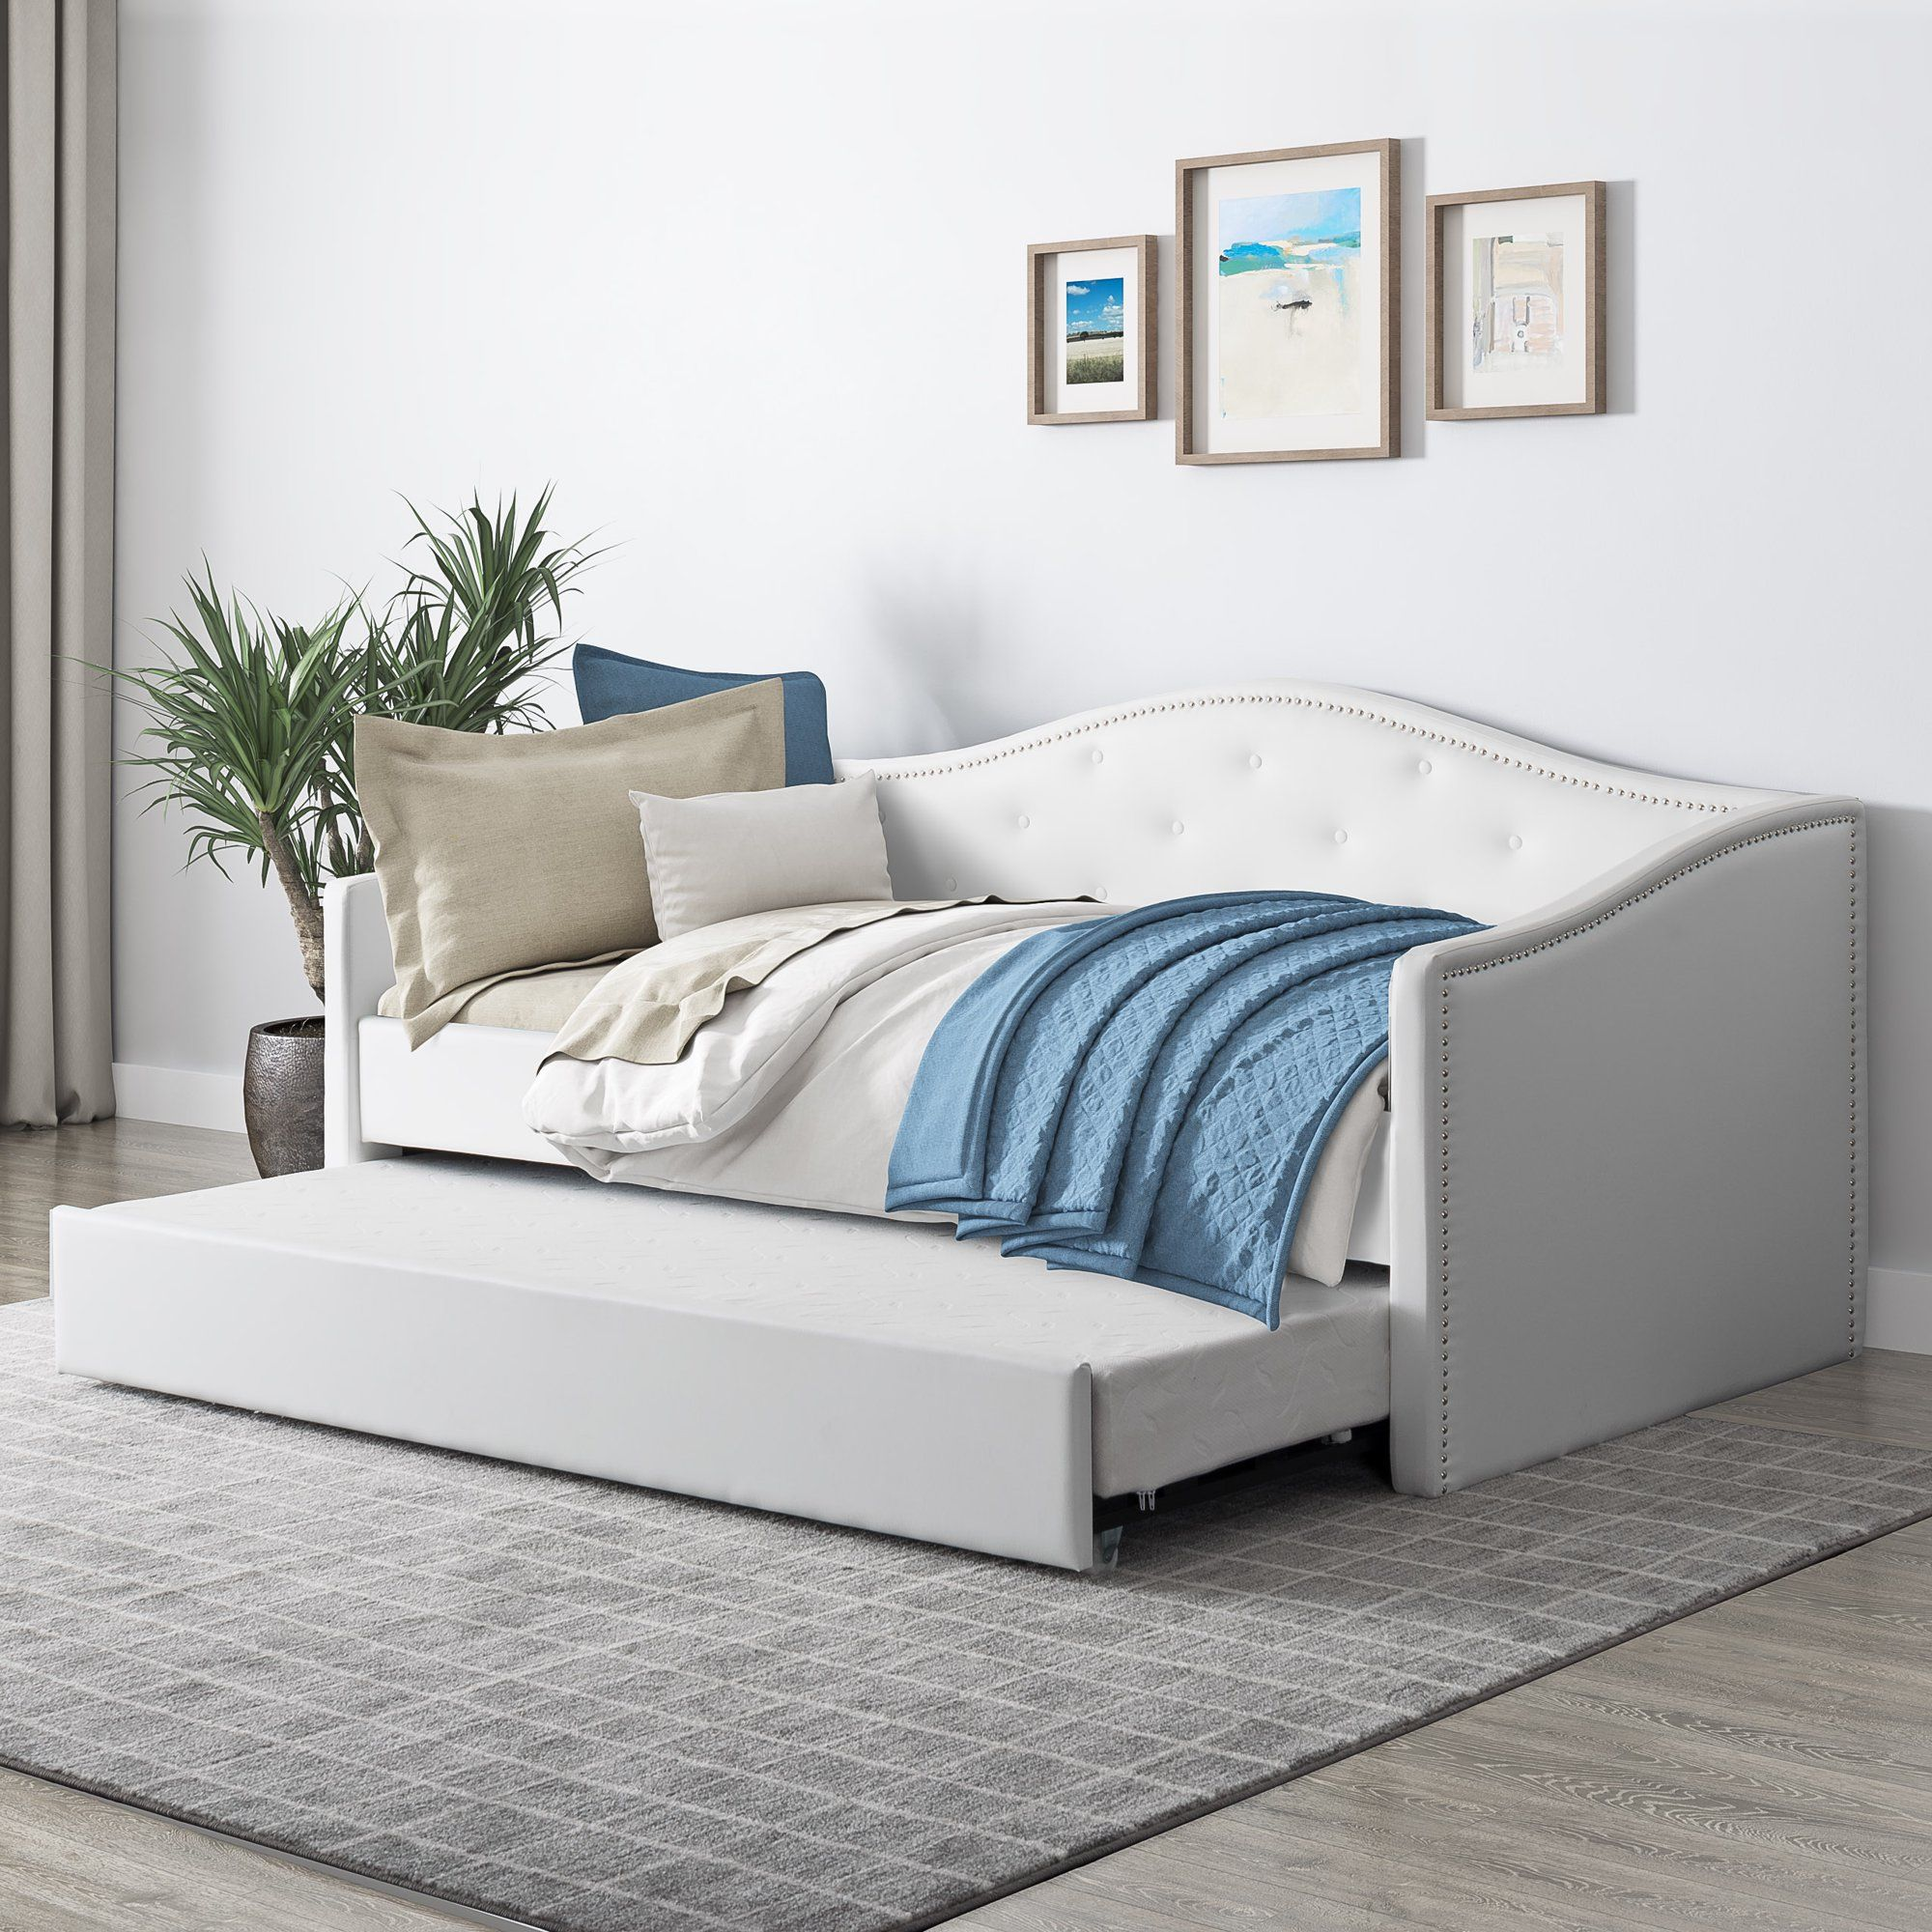 Pin By Niyyyah 2xx On Ii Home Vibe Ii In 2021 Daybed With Trundle Twin Daybed With Trundle Trundle Bed Daybed with trundle with mattress